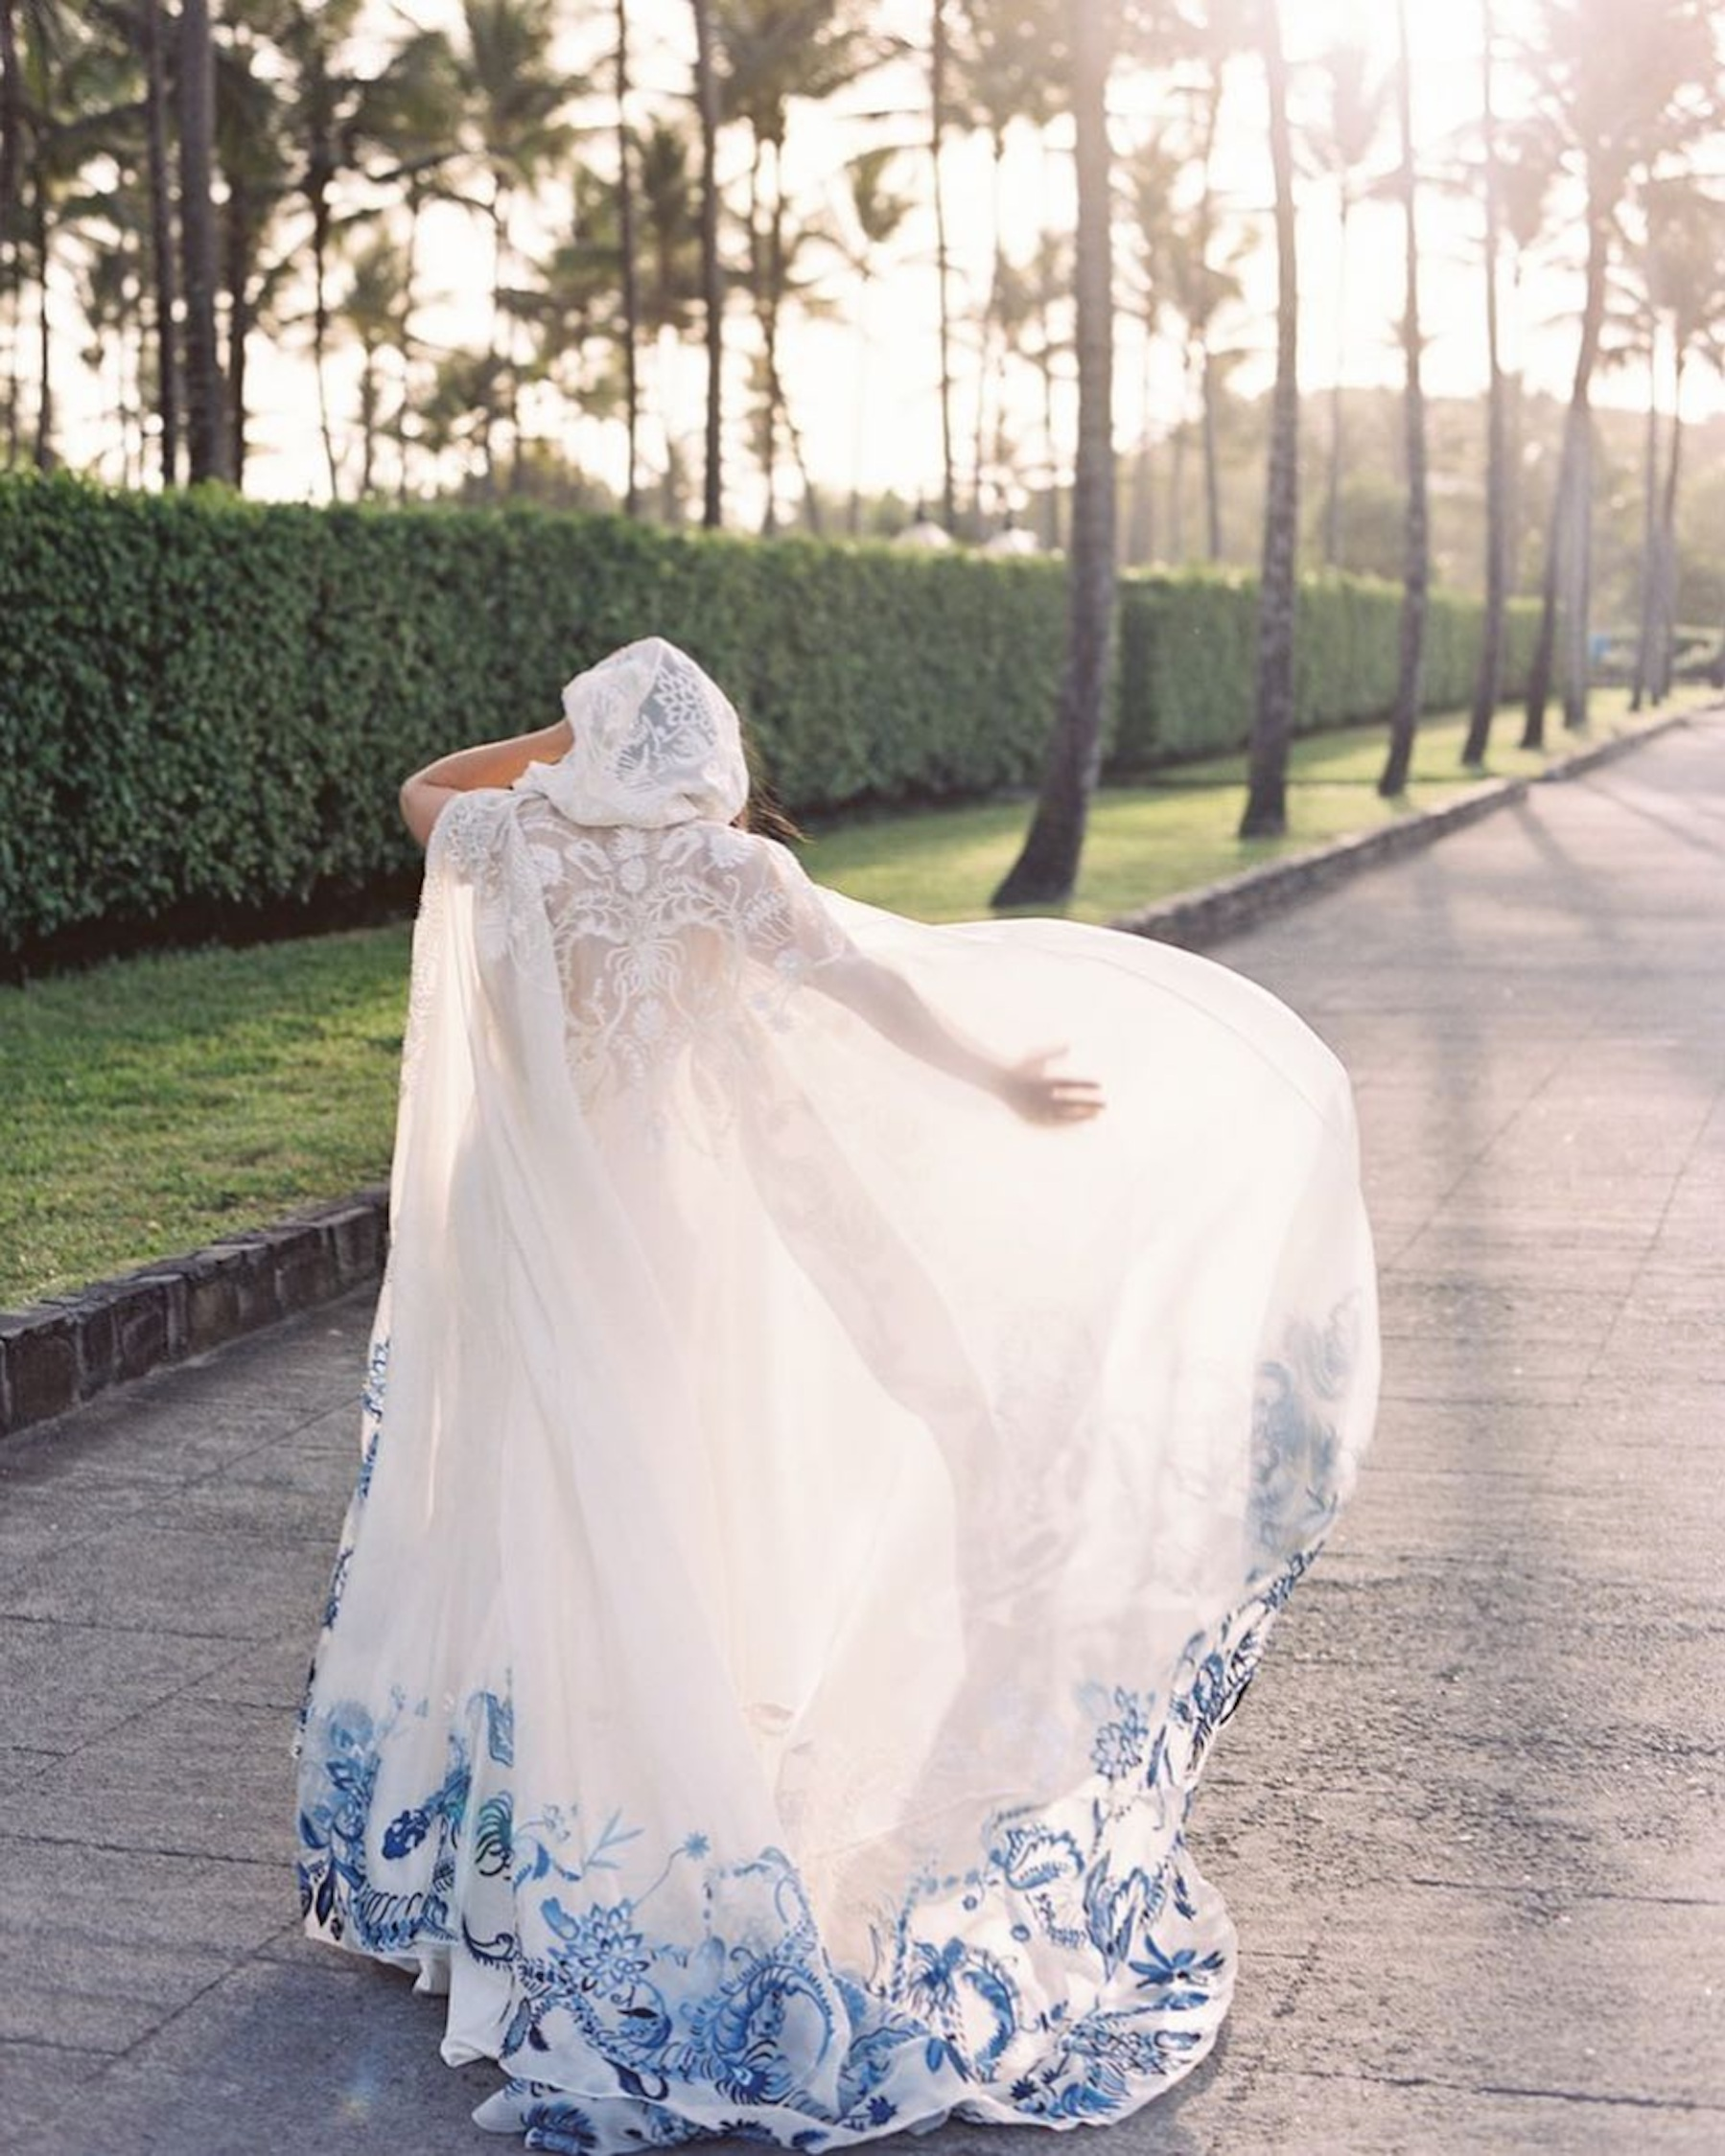 Tommy Hilfiger heiress Ally Hilfiger had the rock and roll beach wedding of her dreams. - The bride and designer teamed up with dad to create this gorgeous hand embroidered cape. Stunning!Photo by Tec Petaja.